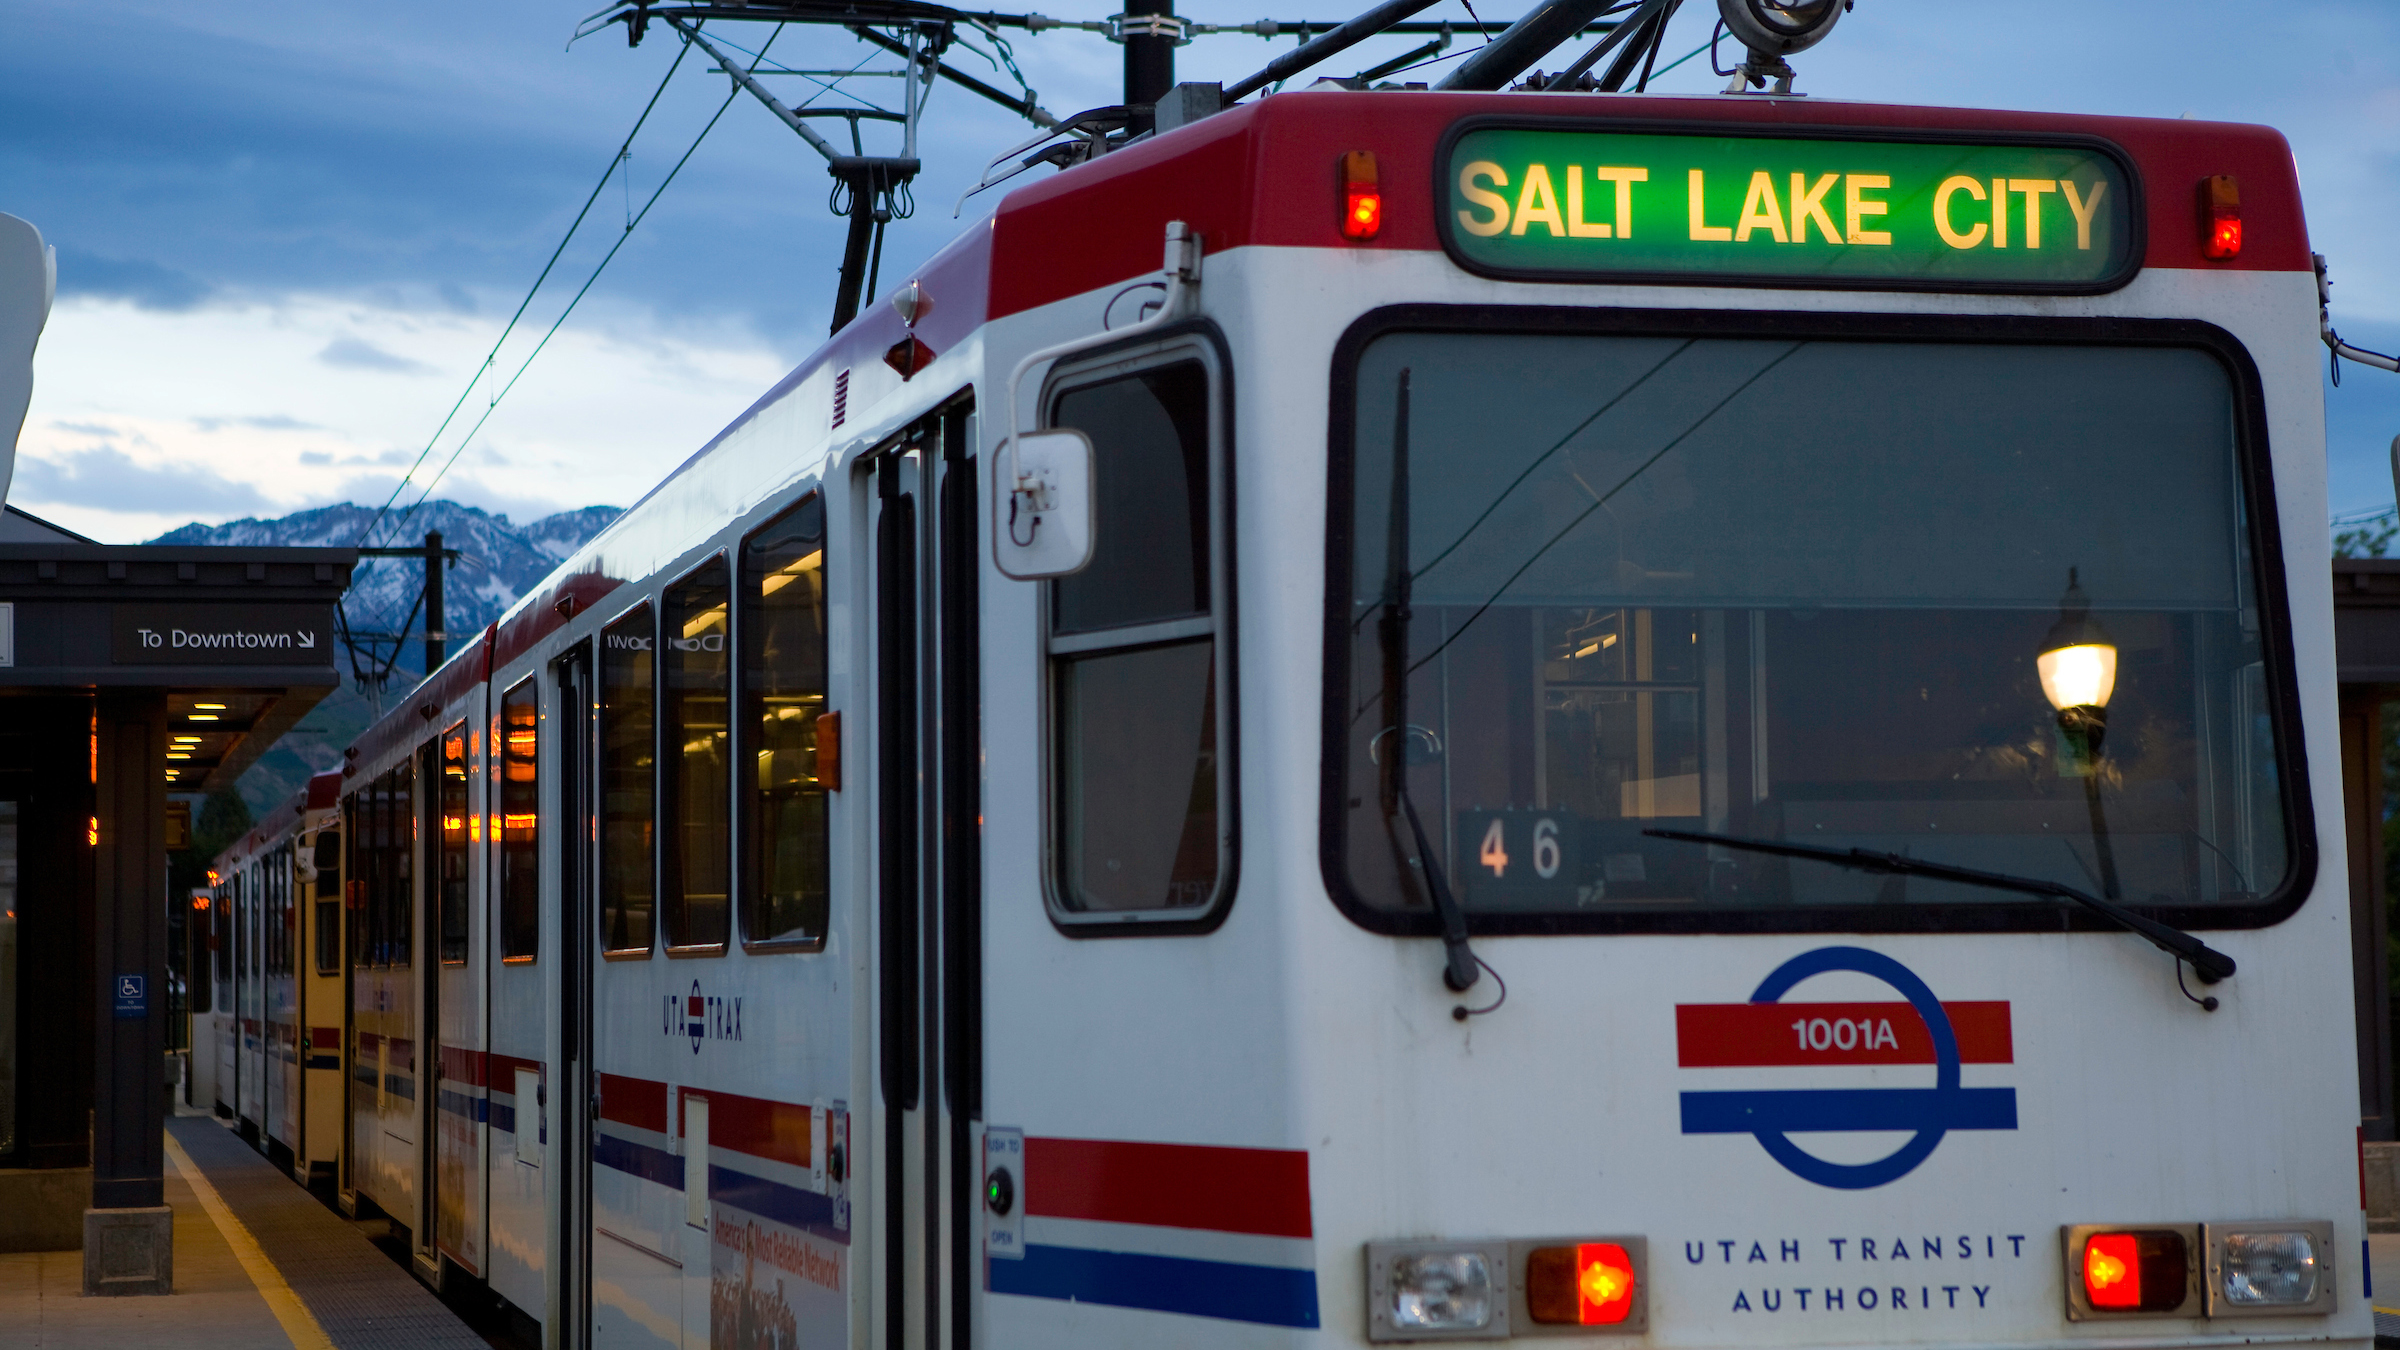 A light rail TRAX train departing a station, with a sign indicating the train is headed to Salt Lake City